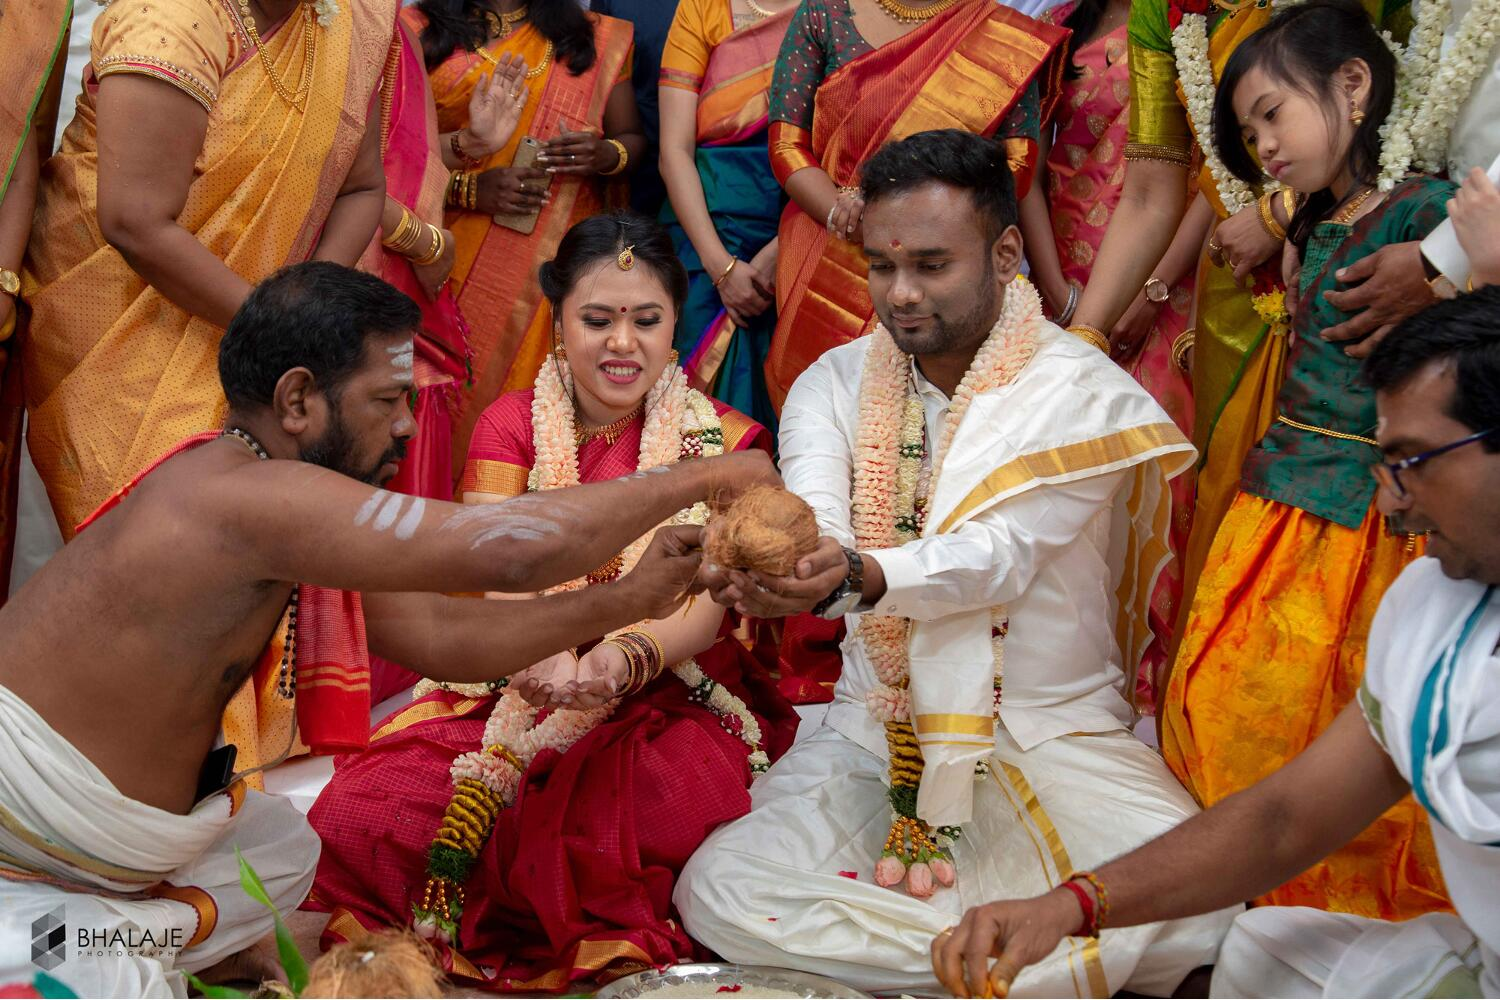 Tamil Brahmin Wedding Photography in India, Brahmin wedding Photography, Brahmin Wedding Candid Photography, Brahmin Wedding Photographers In Chennai, Tamil Brahmin Wedding Photography, Destination Wedding Photography